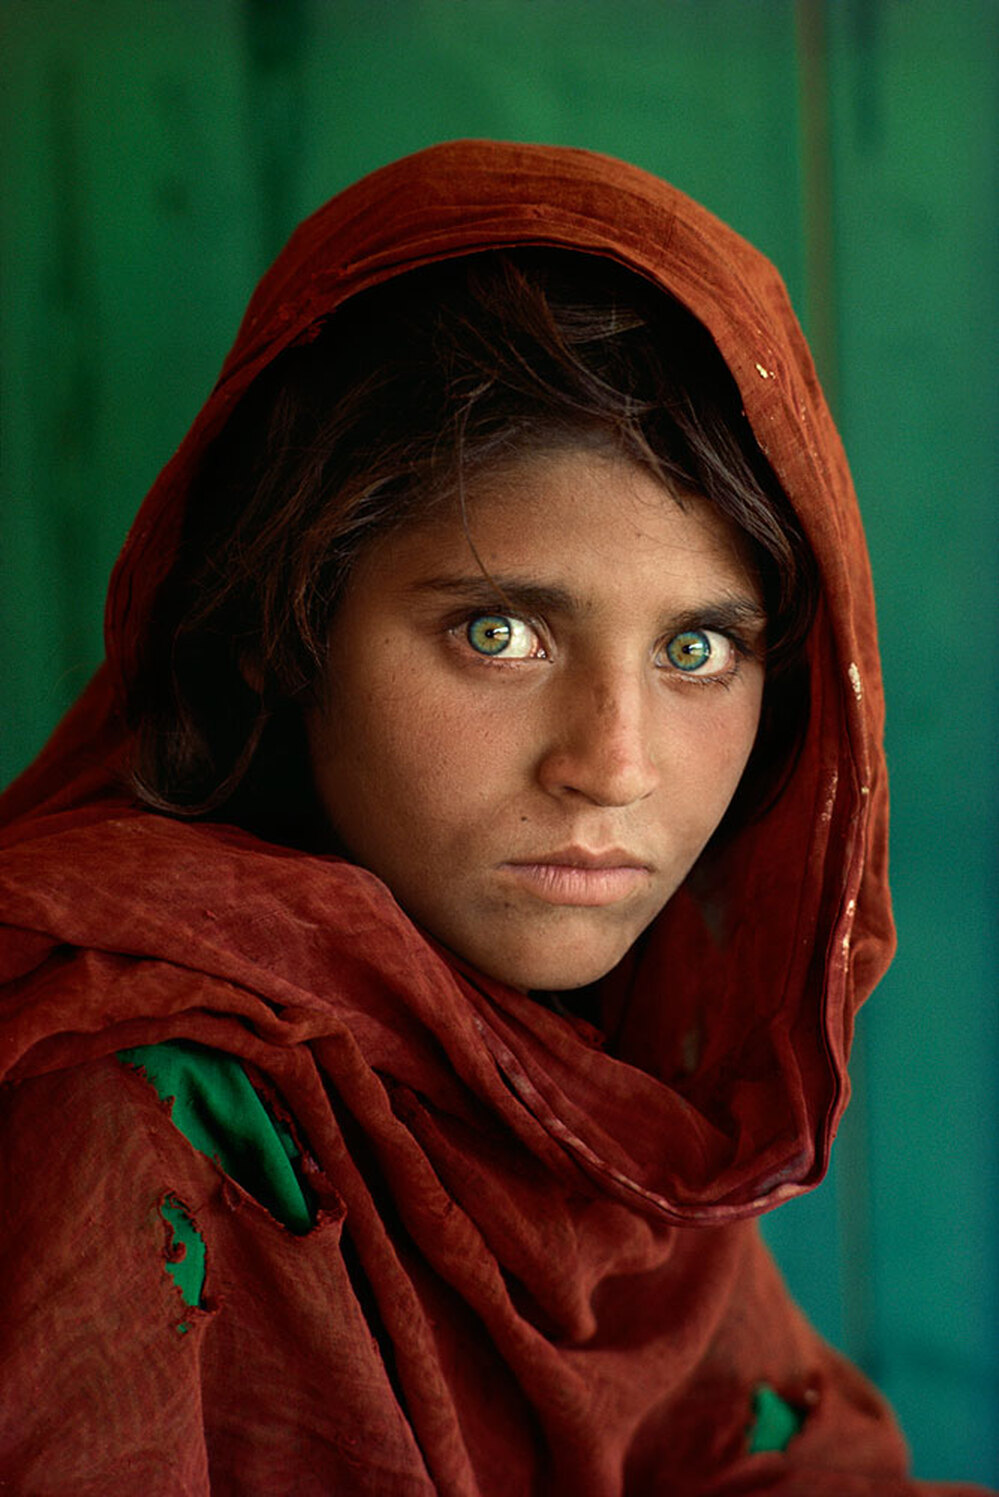 Mccurry_custom-d8f18fad4de9bb35b8dcb13c51d529c0f290463f-s51